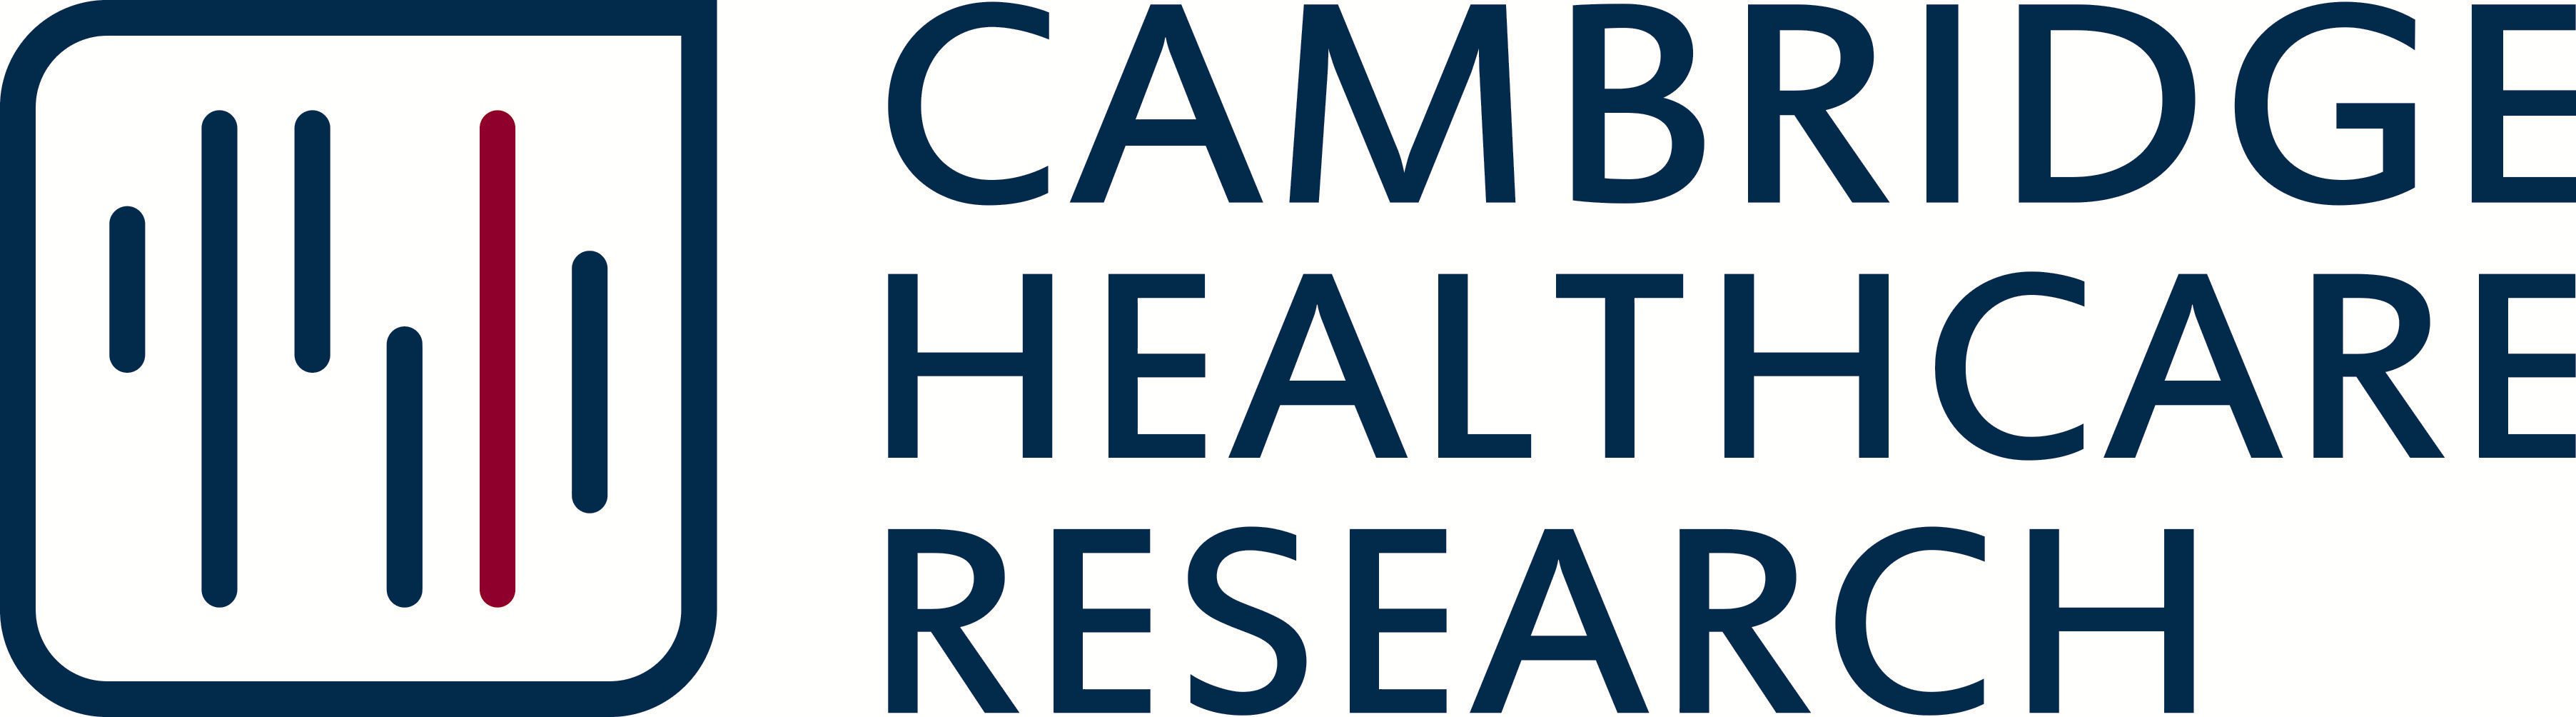 Logo in blue reads Cambridge Healthcare Research